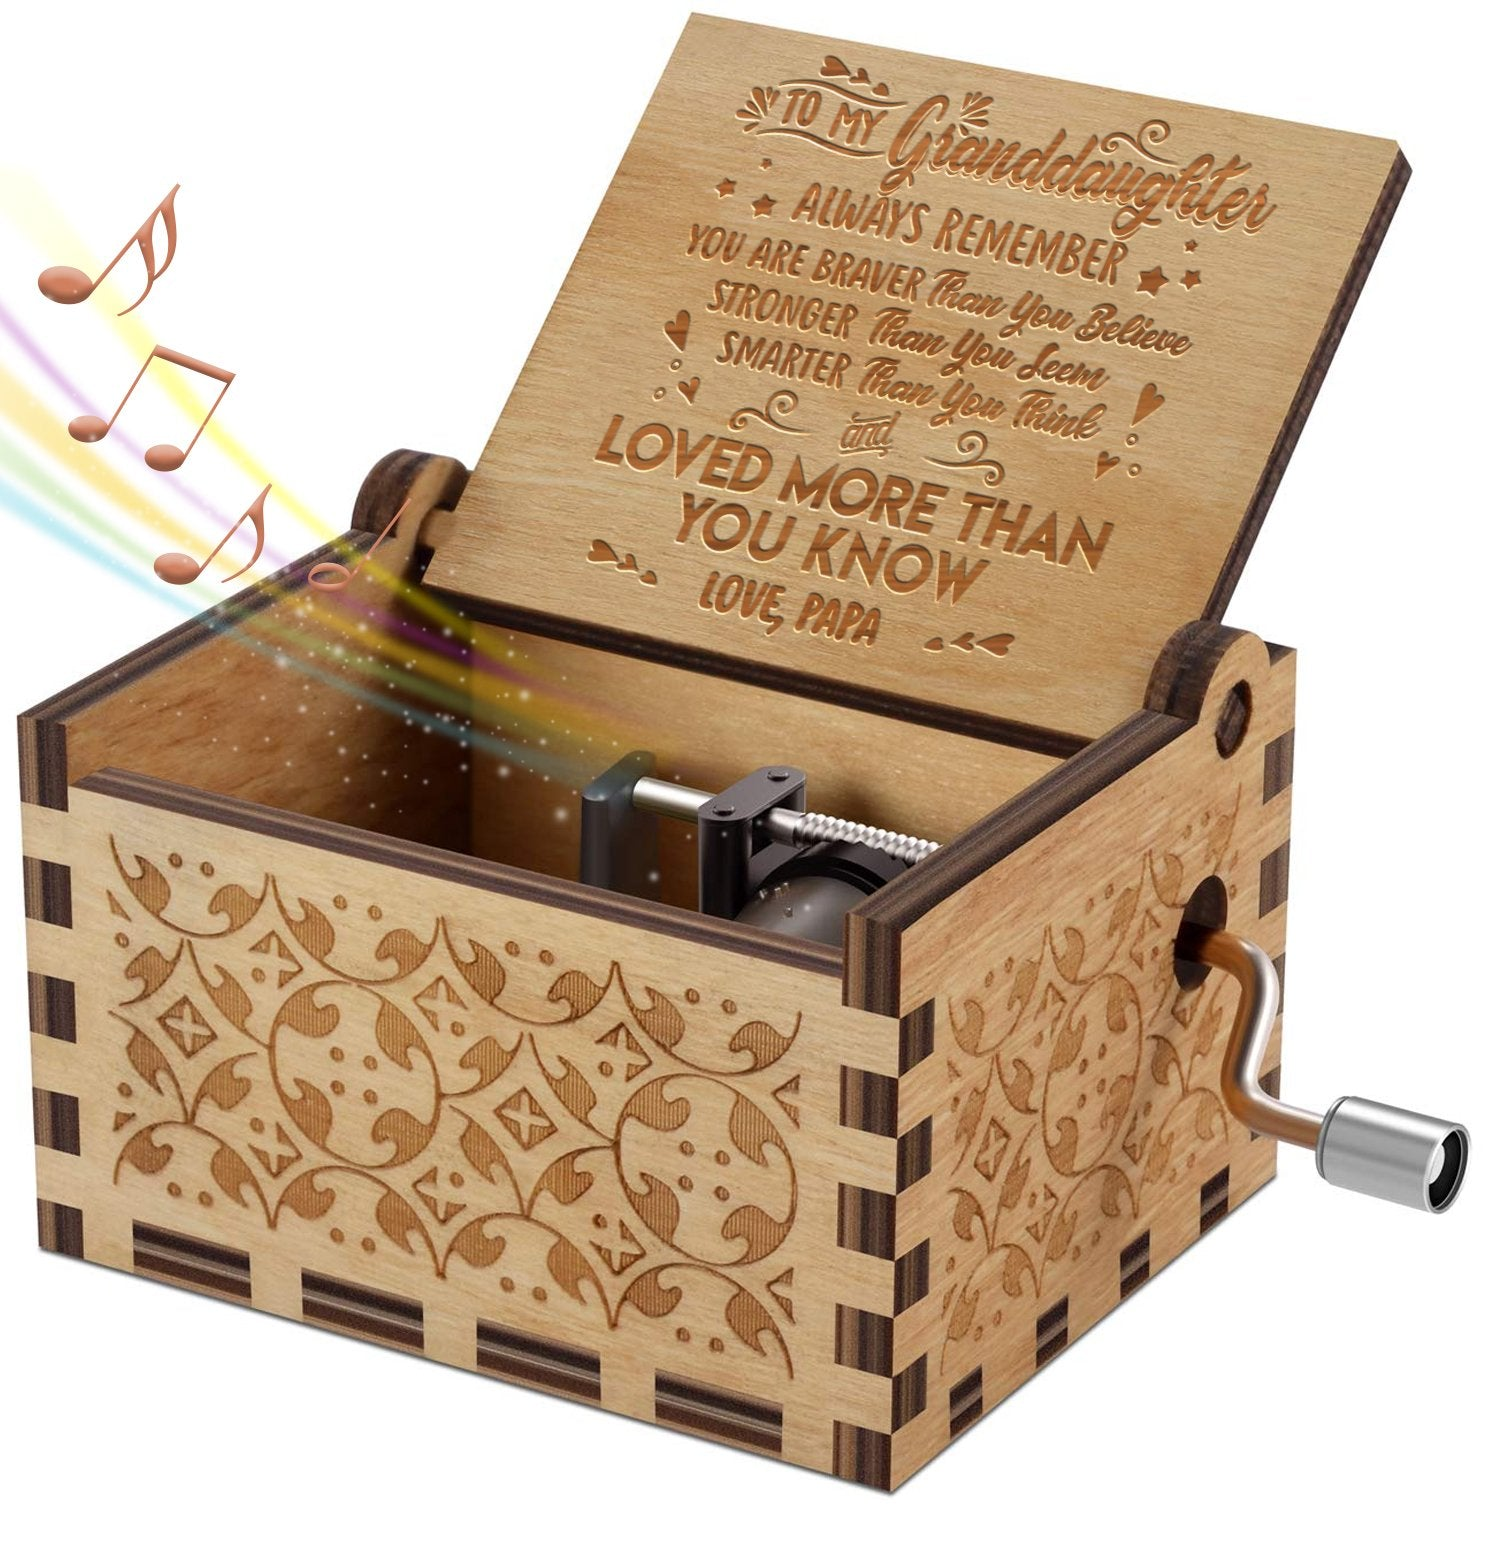 Papa To Granddaughter - You Are Loved More Than You Know - Engraved Music Box - Candyhousehold